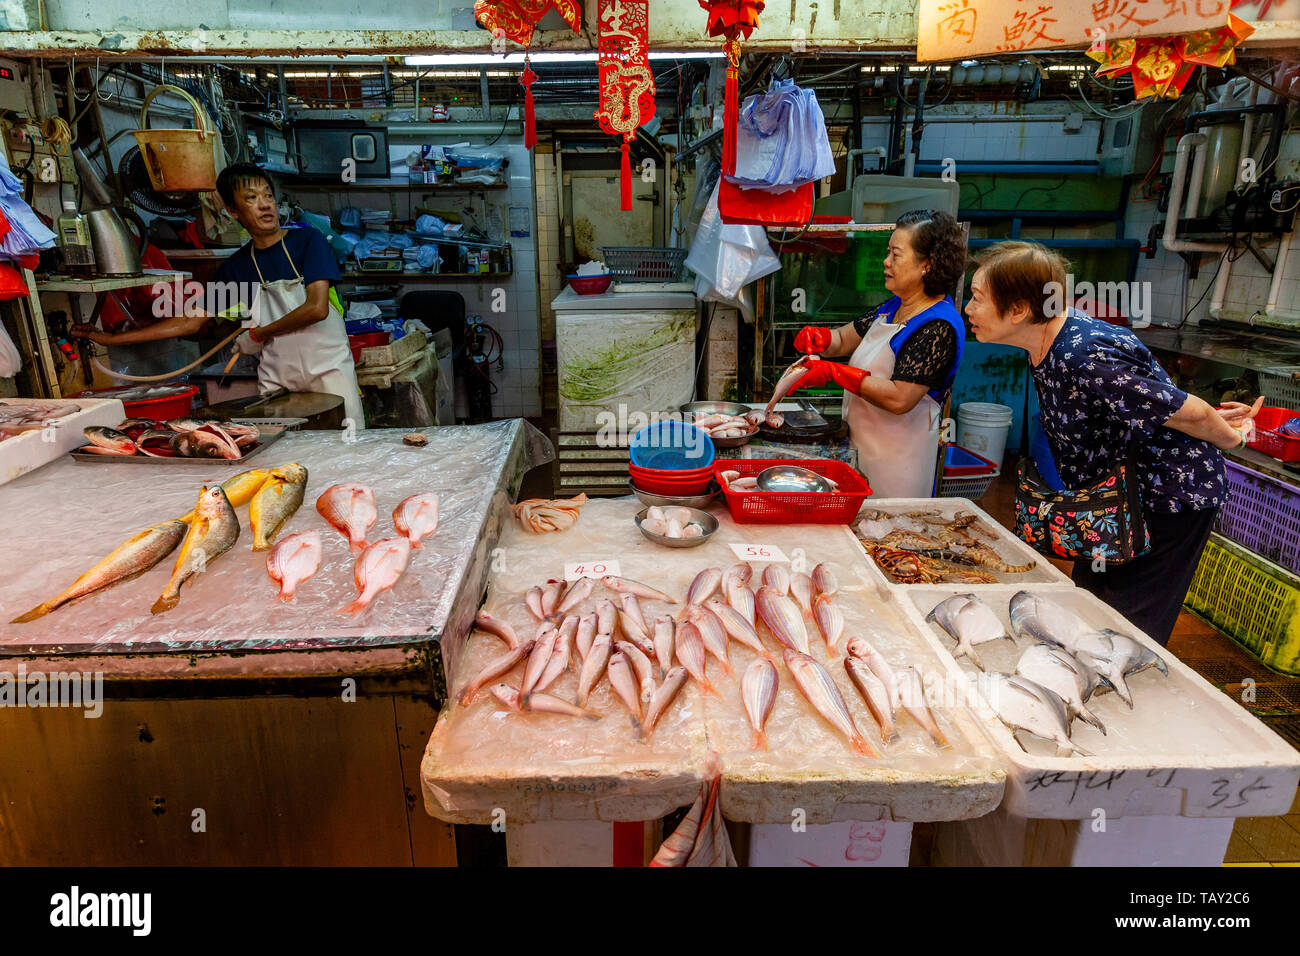 A Wet Fish and Seafood Stall Inside The Bowrington Road Cooked Food Centre, Hong Kong, China - Stock Image